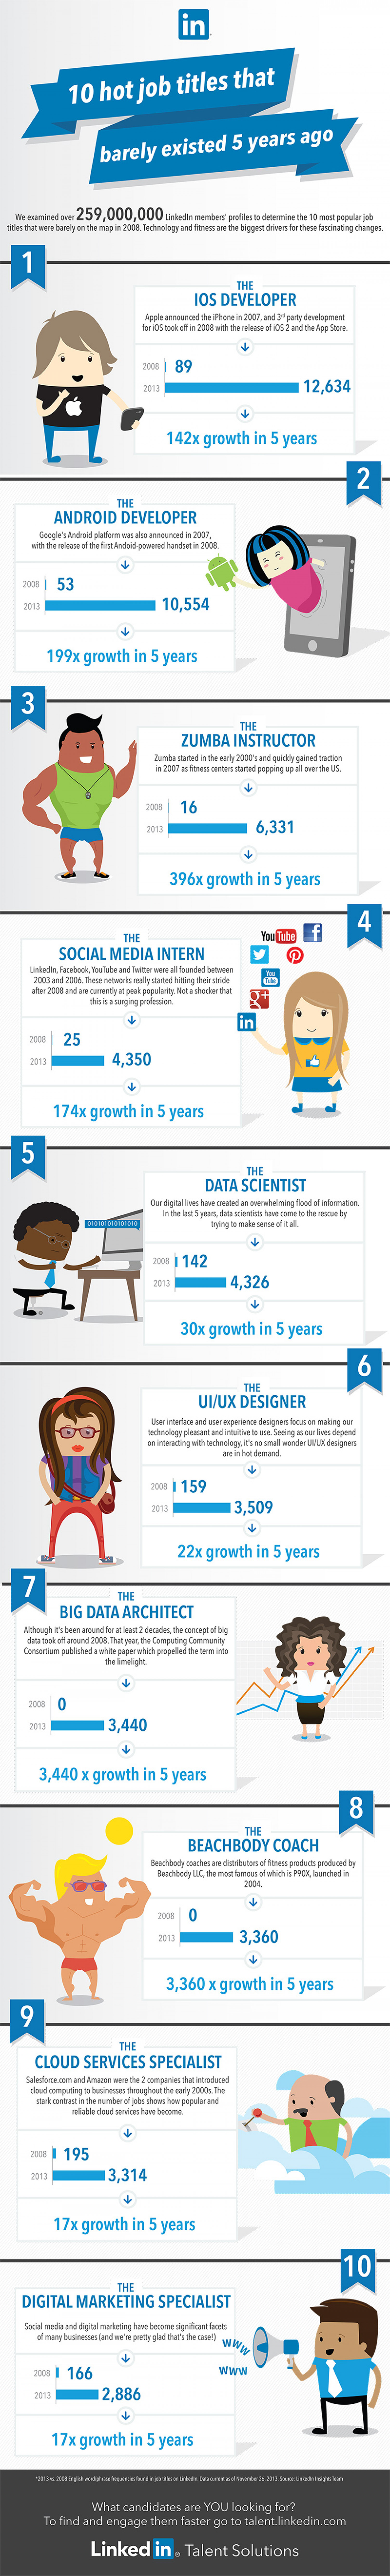 top 10 job titles that didn t exist 5 years ago visual ly top 10 job titles that didn t exist 5 years ago infographic